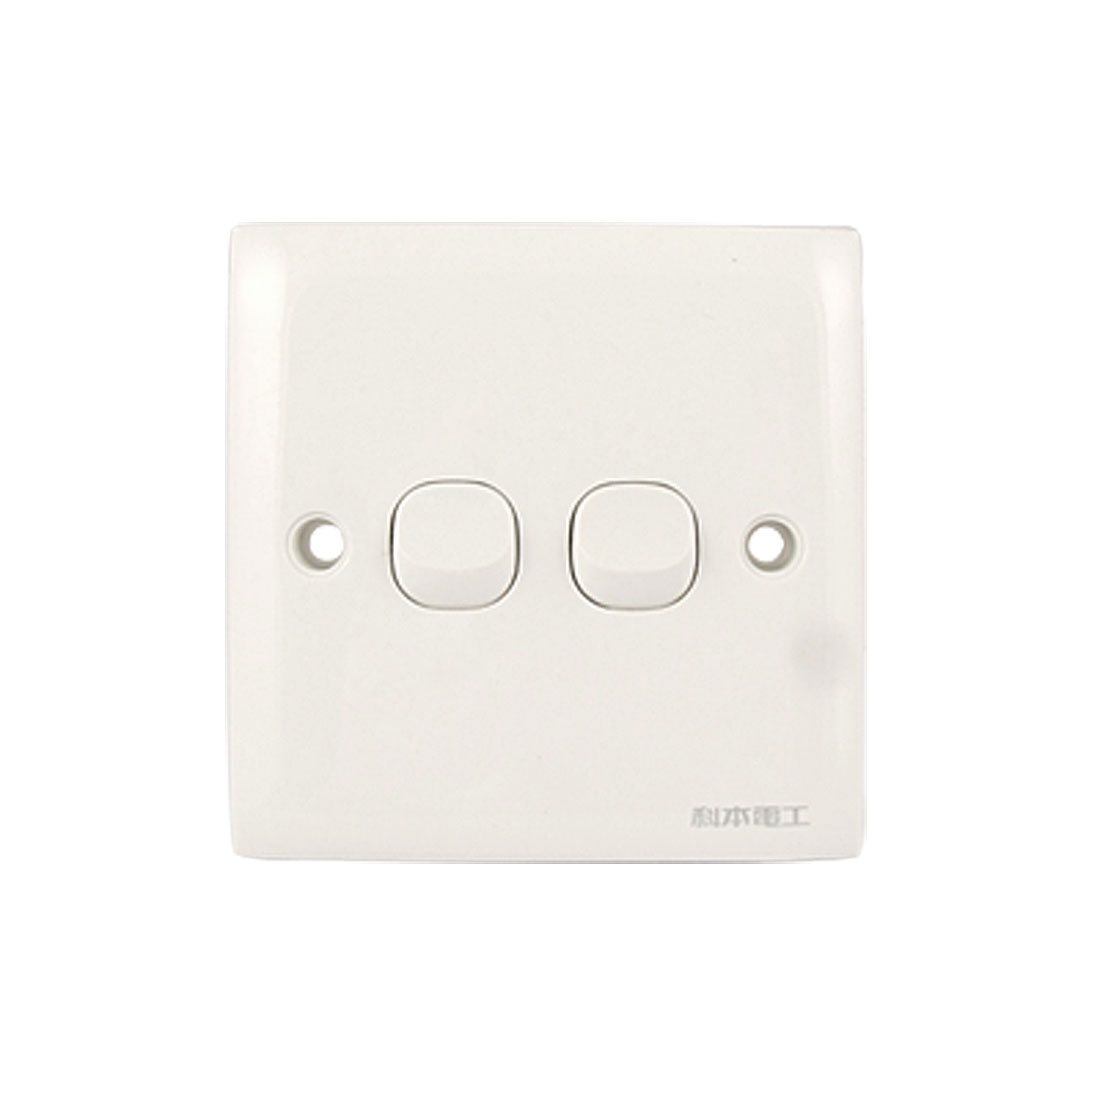 Replacement AC 250V 10A SPDT On/On 2 Gang Plate Wall Switch